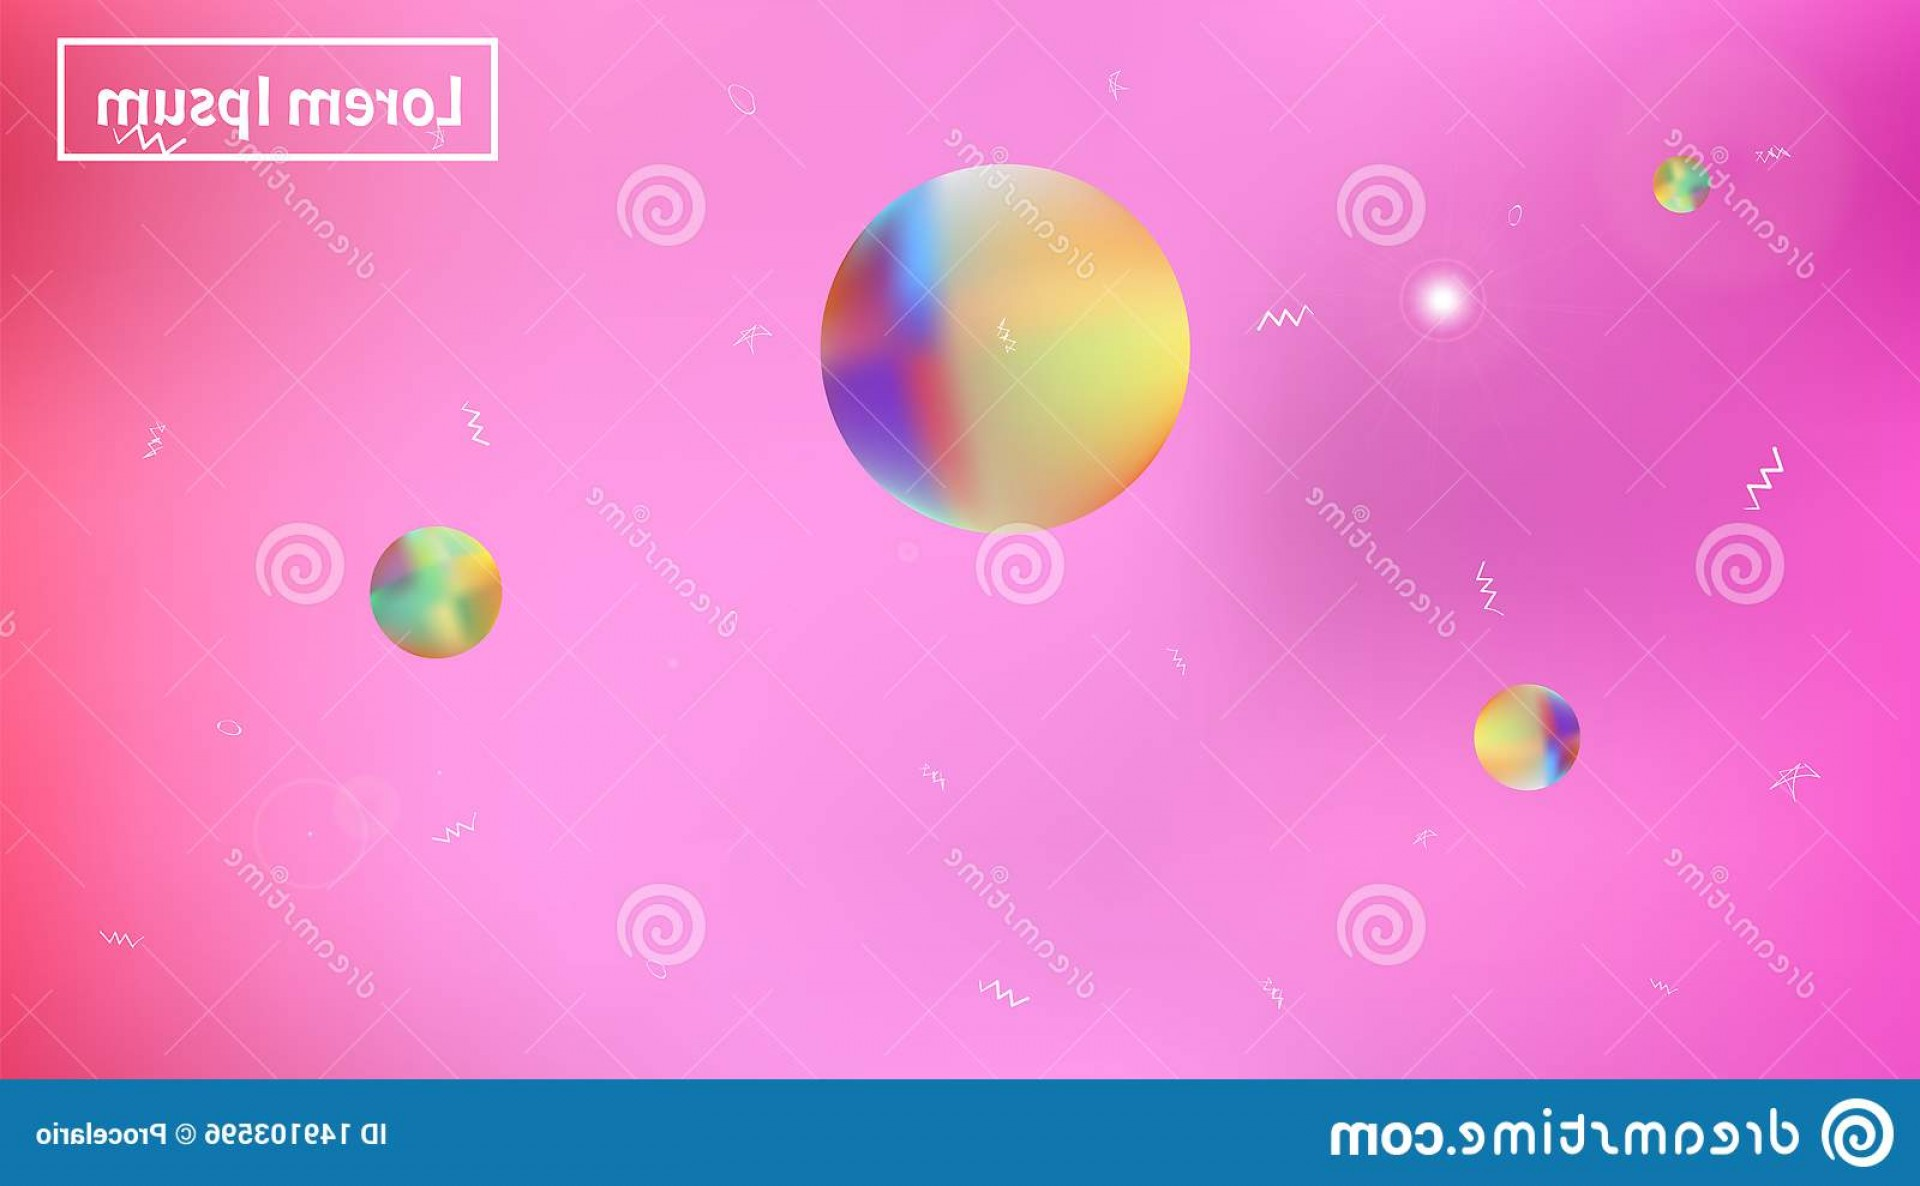 Hires Camera Lens Vector: Colored Space Background Creative Hi Res Fresh Illustration Texture Stars Planets Signs Colorful Universe New Space Background Image